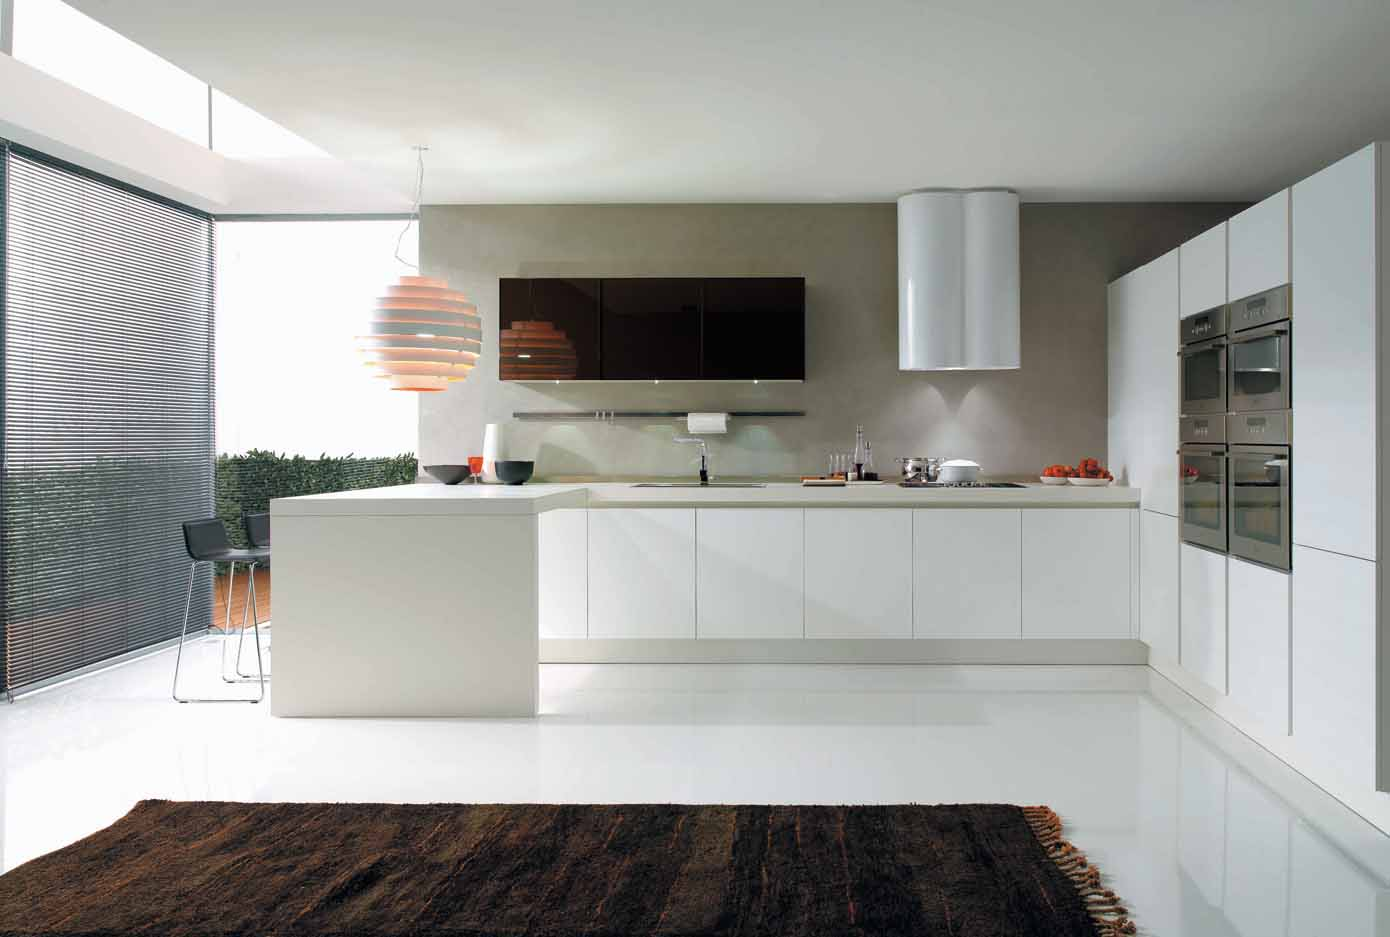 Filo vanity top kitchen design euromobil for Best kitchen designs